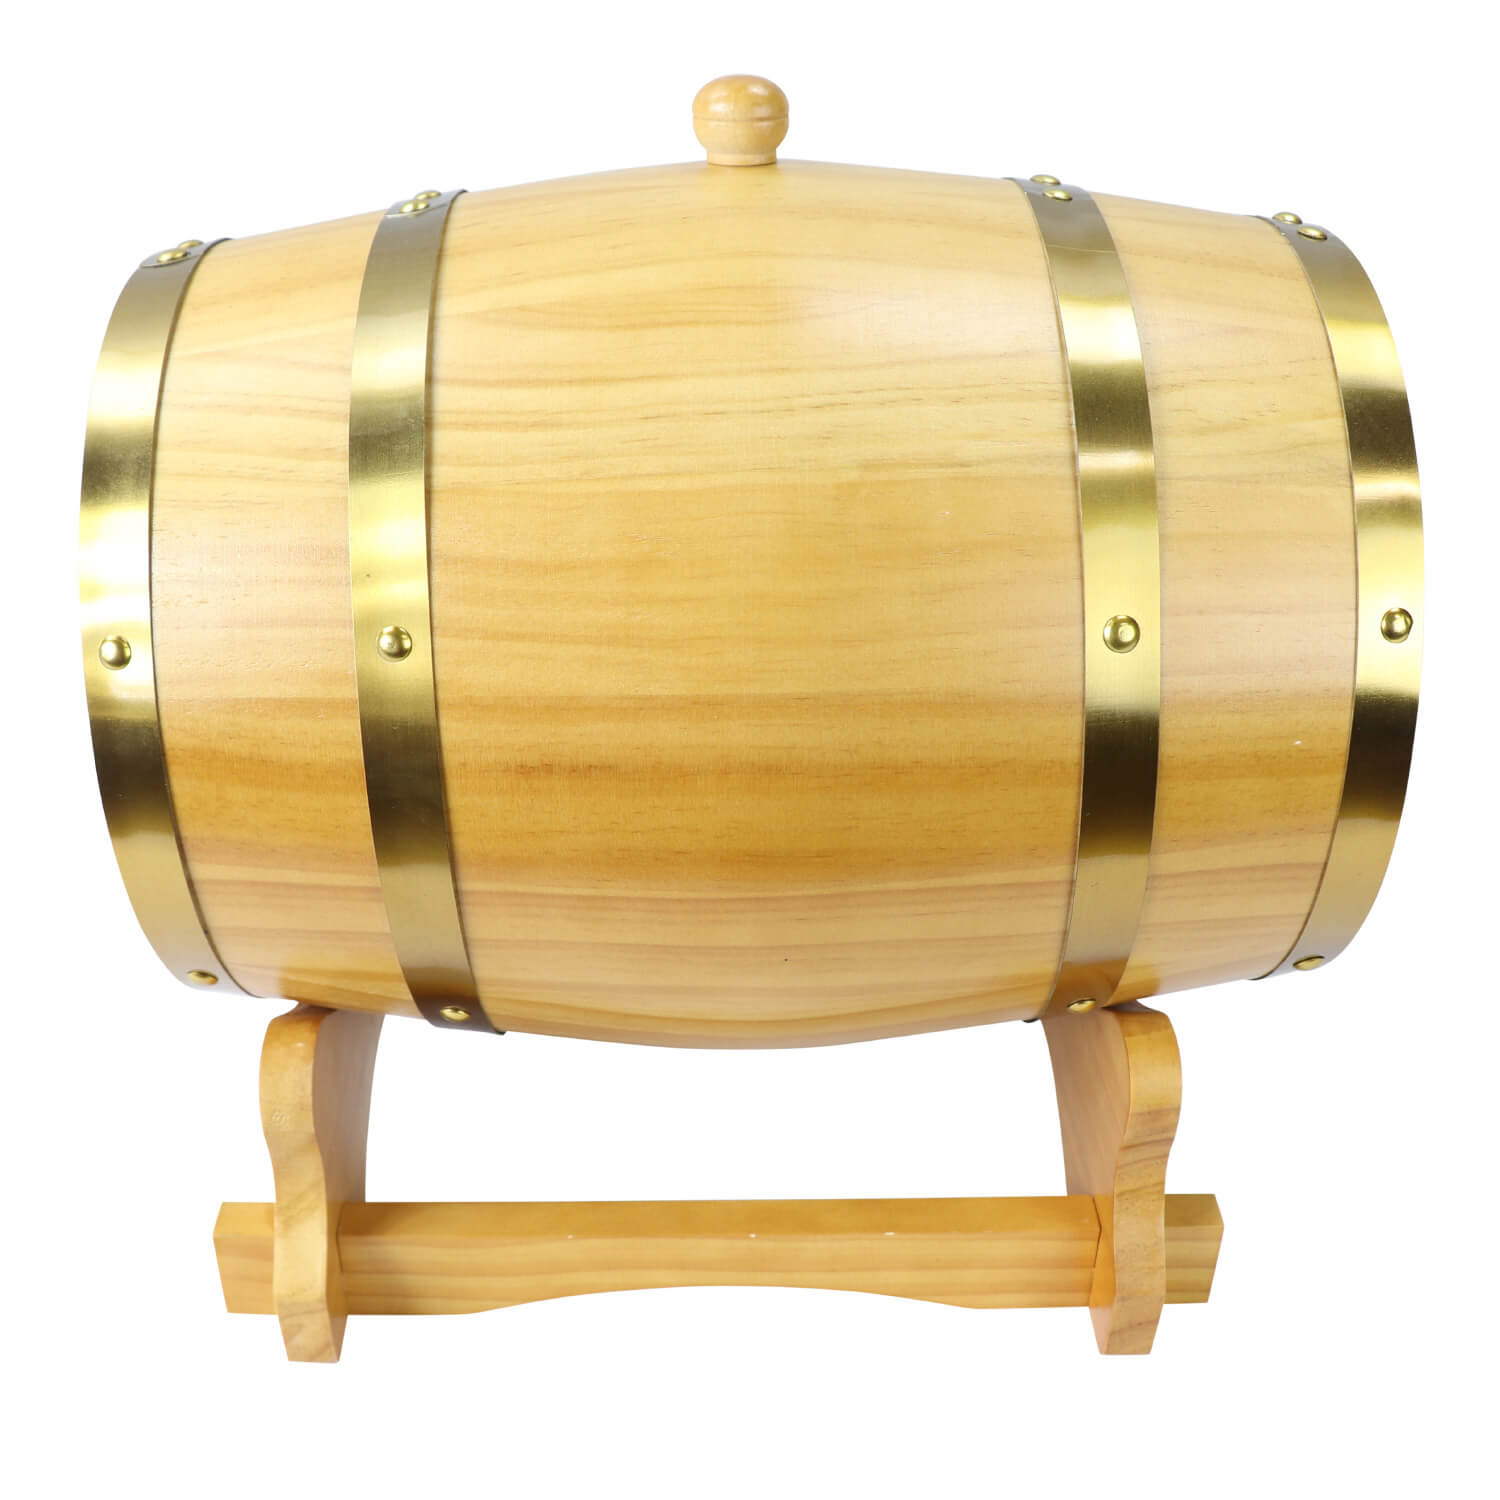 Wooden Barrel - 10L